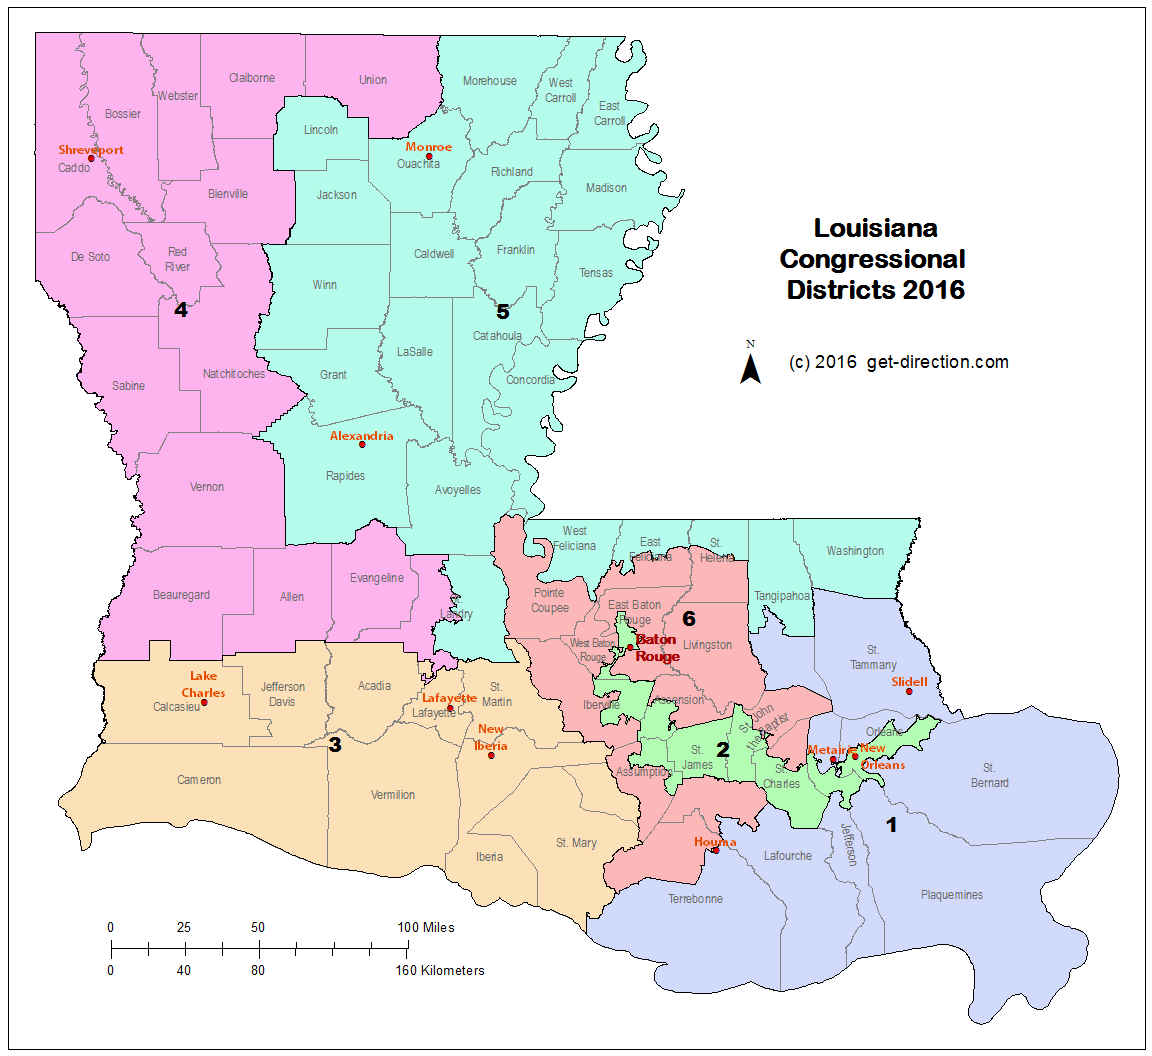 louisiana-congressional-districts-2016.png